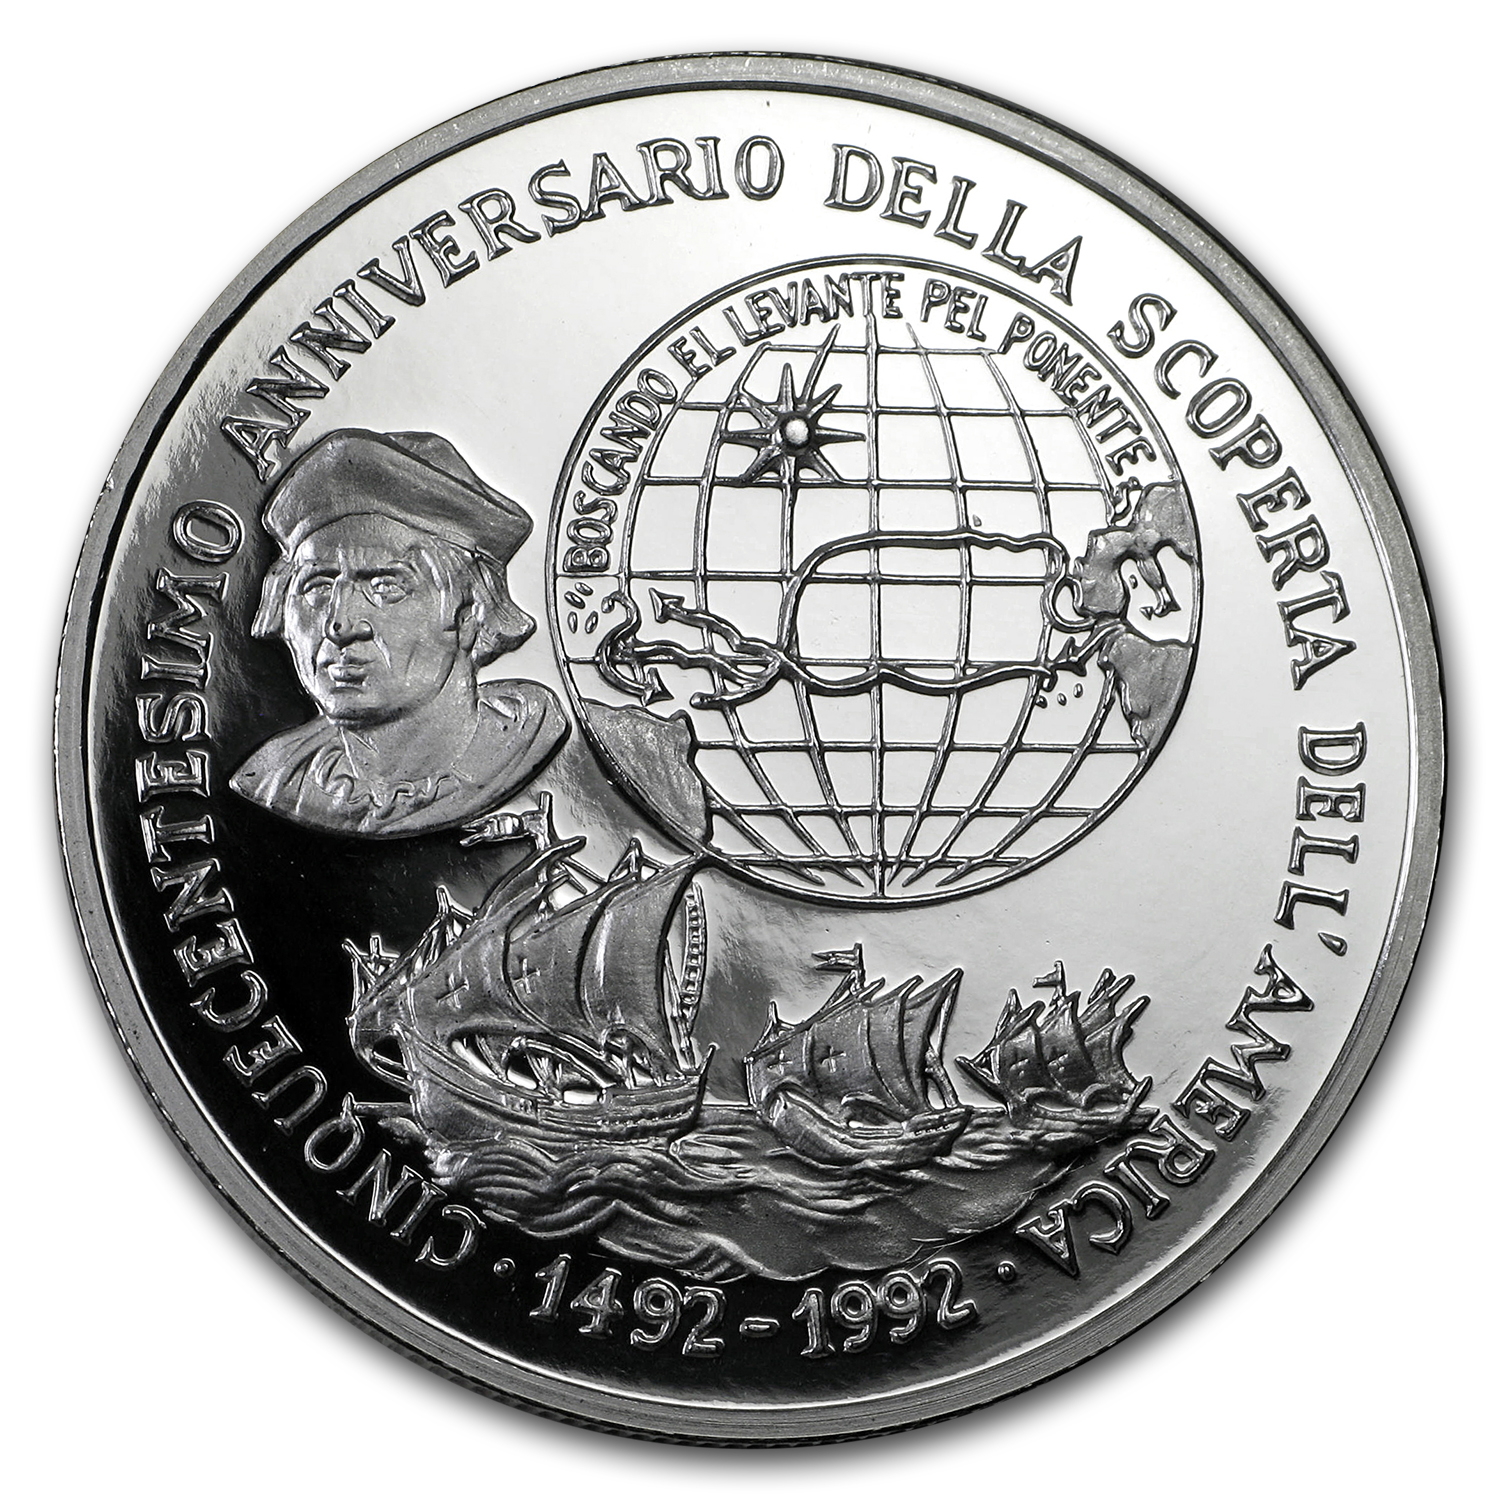 1 oz Silver Round - 1992 PAMP Suisse (Christopher Columbus)